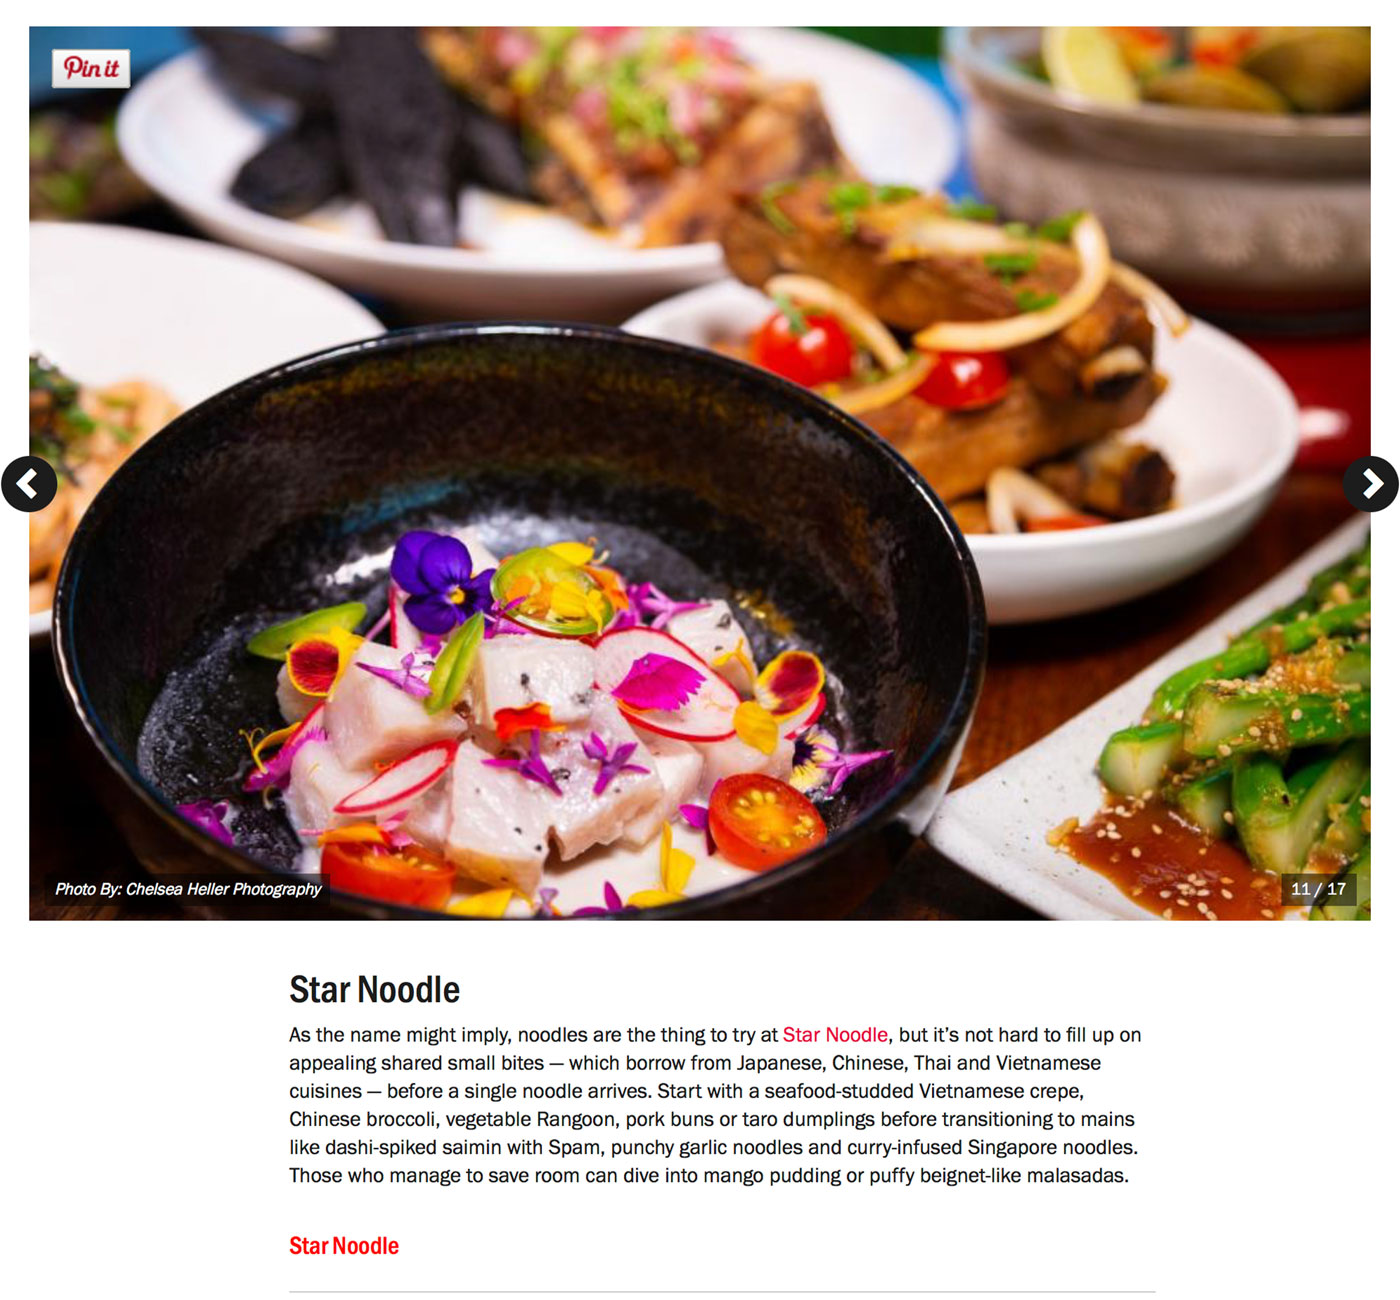 "Screenshot from Food Network's Guide to:<br><a href=""https://www.foodnetwork.com/restaurants/photos/restaurant-guide-maui"" target=""_blank"" rel=""noopener noreferrer"">""The Best Restaurants on Maui""</a> - Star Noodle.</br>"